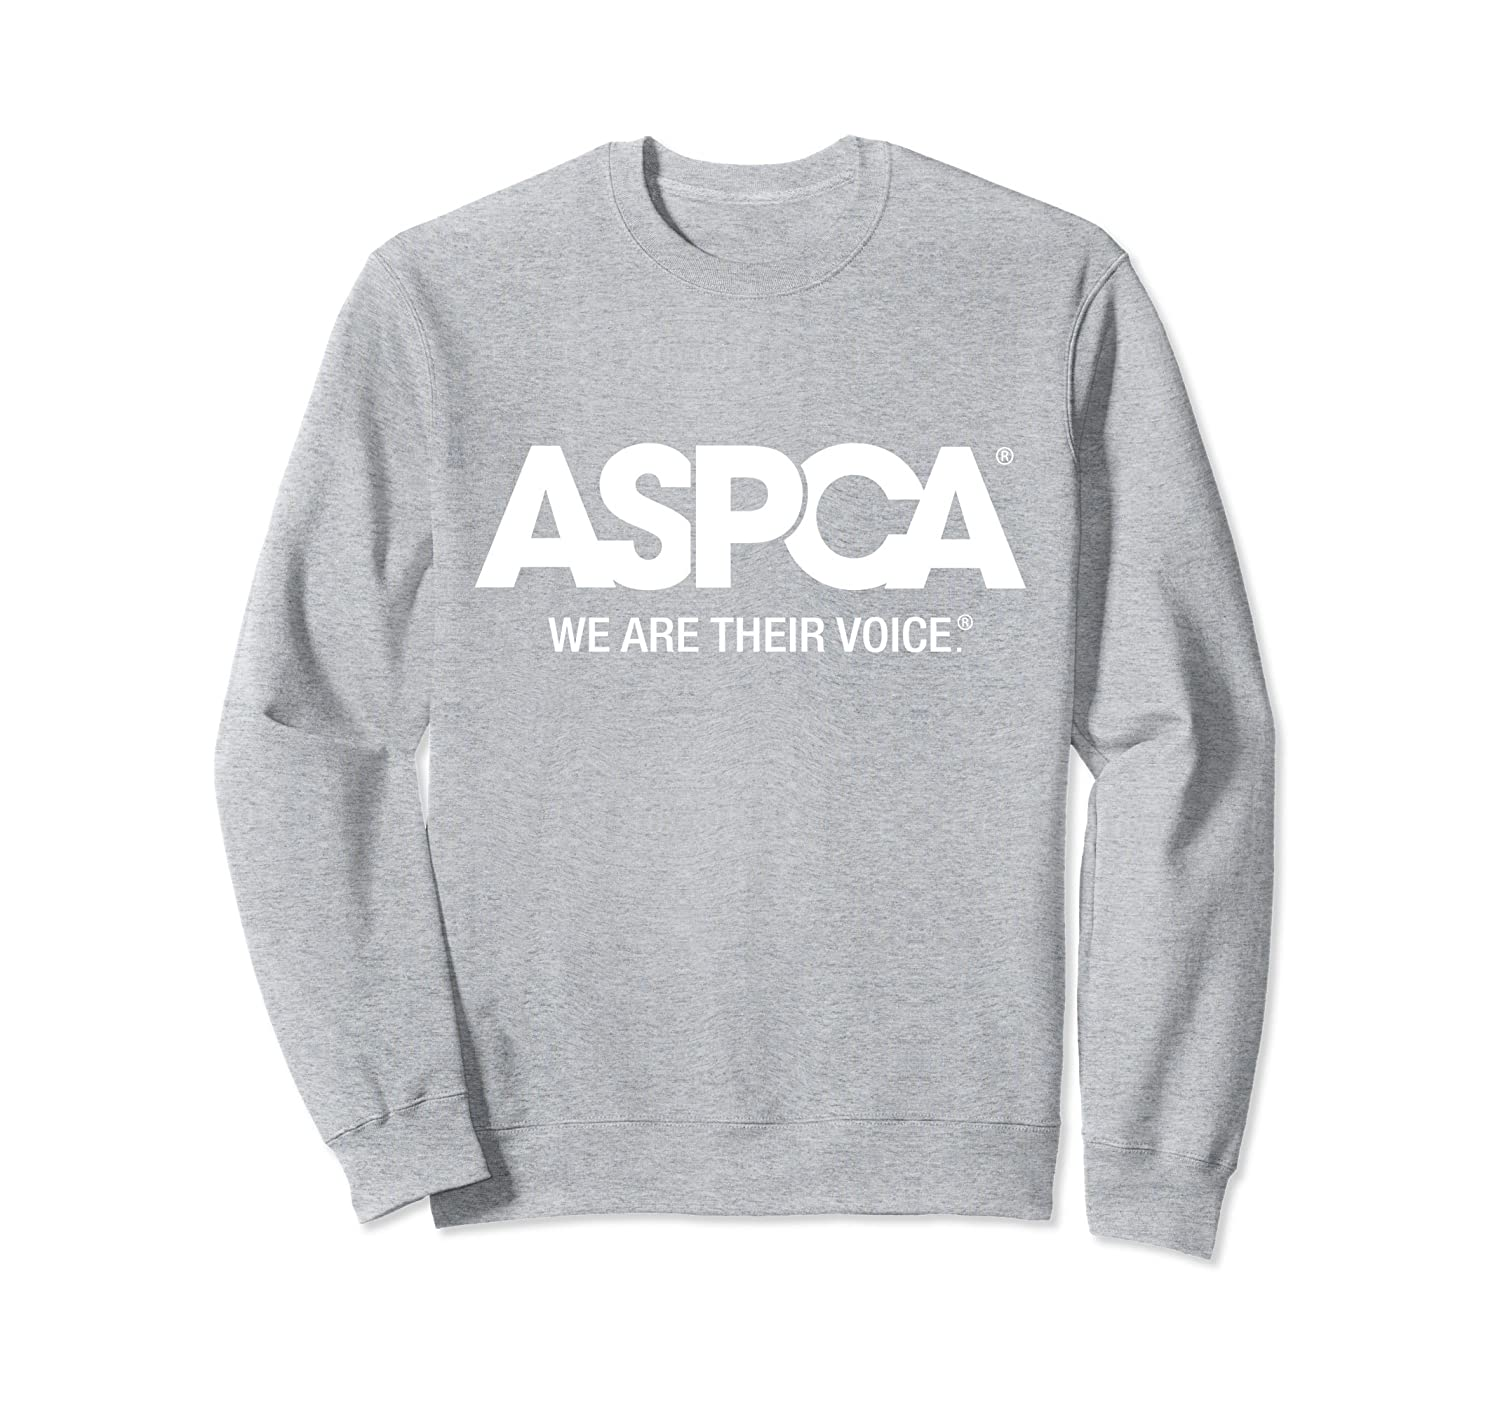 7e545e1492 ASPCA We Are Their Voice Logo Sweatshirt-anz - Anztshirt